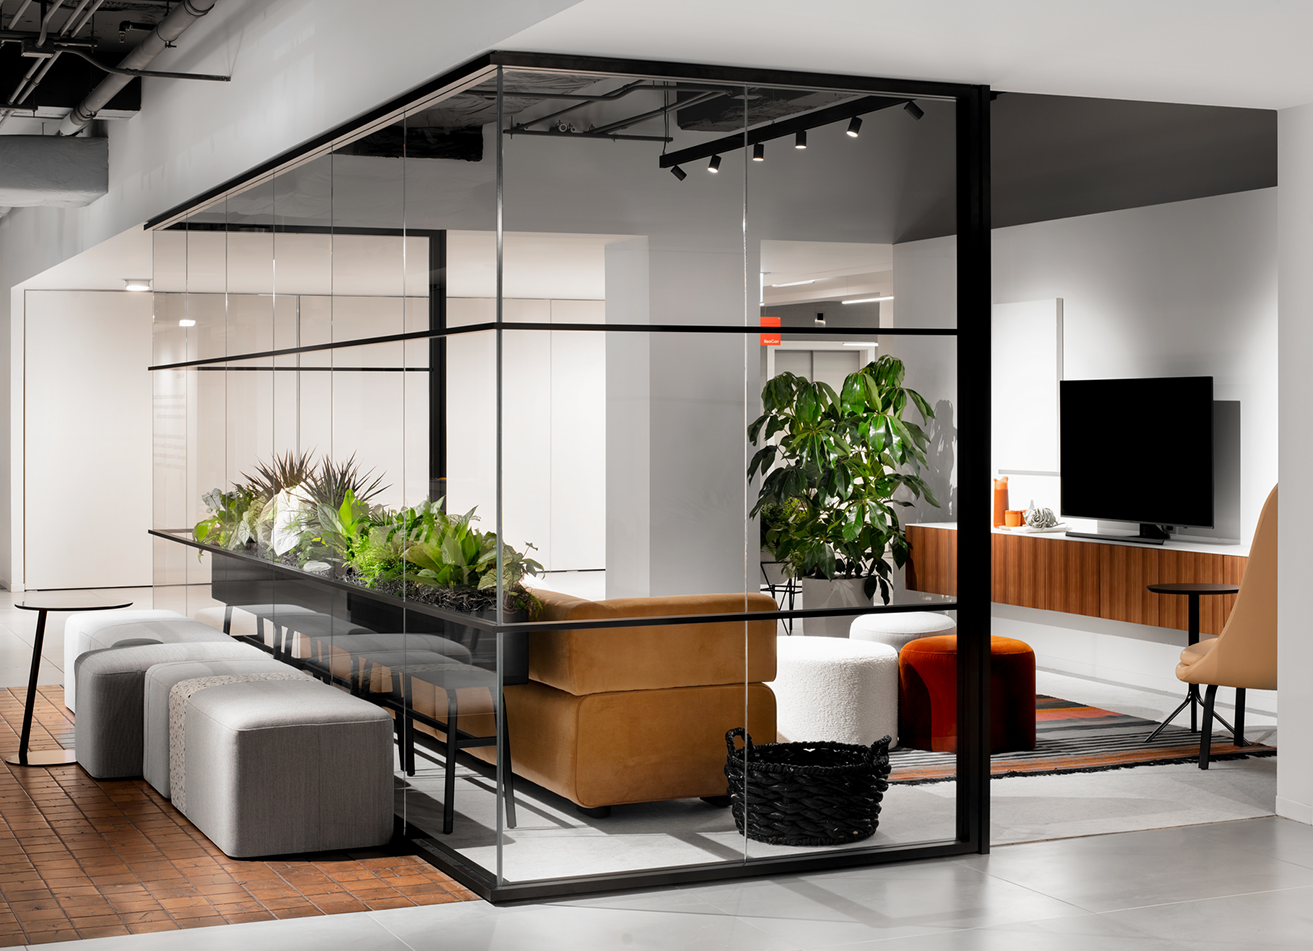 NeoCon lounge with glass walls